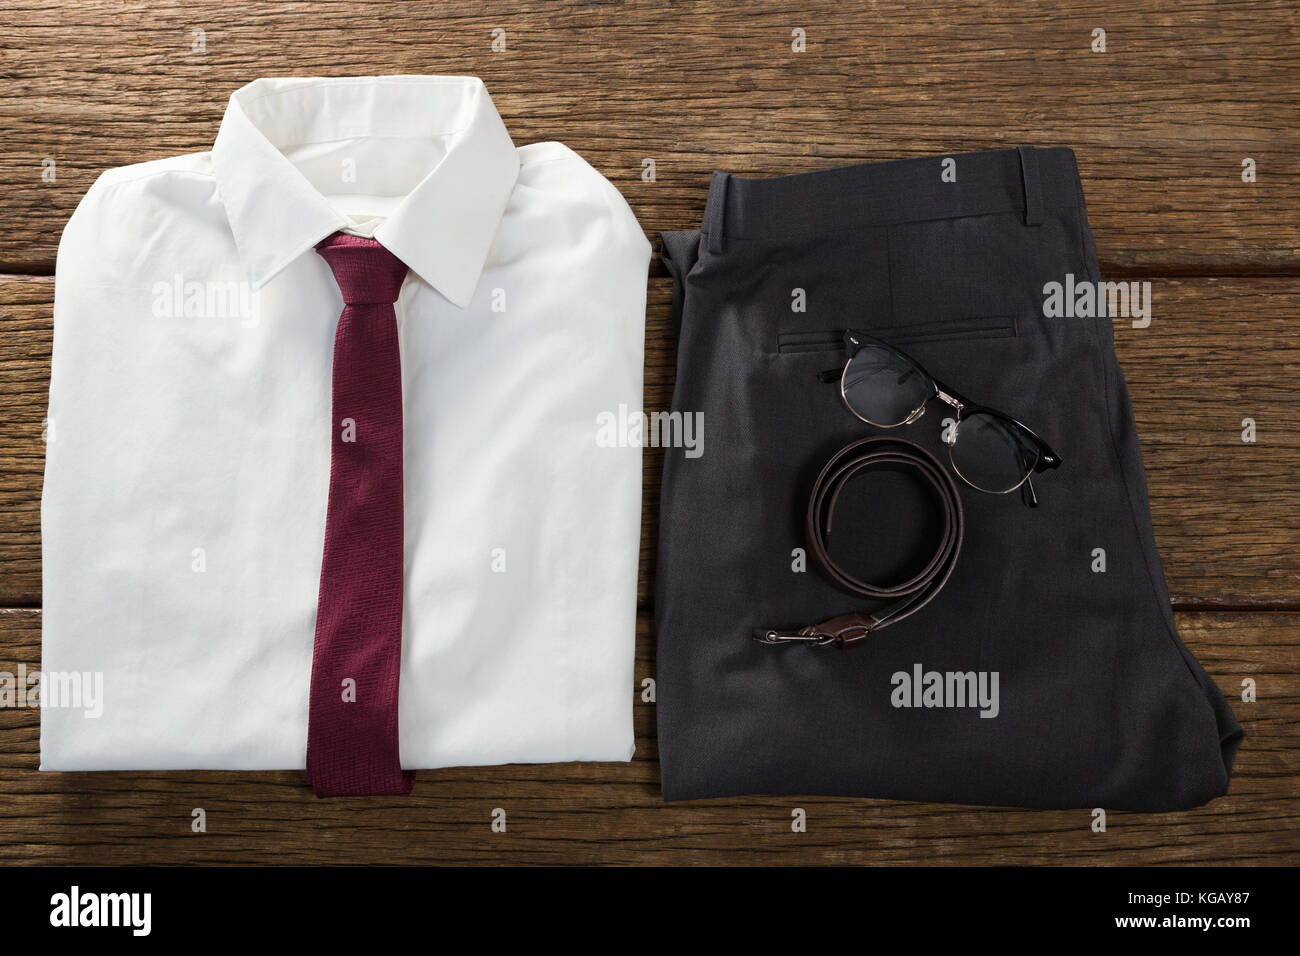 Close-up of folded school uniform, belt and spectacle on wooden plank - Stock Image